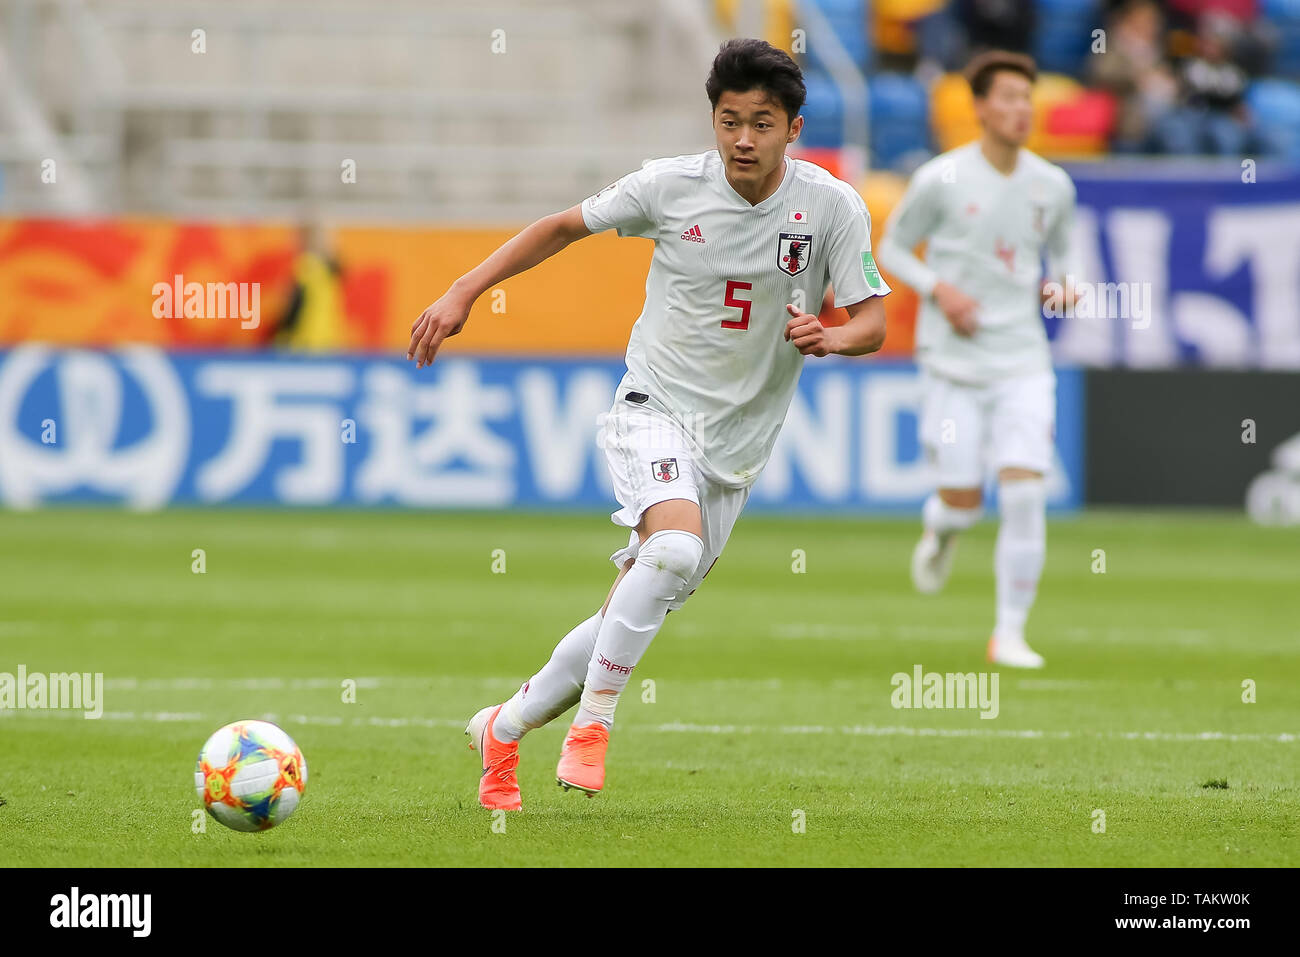 Gdynia Stadium, Gdynia, Poland - 26th May, 2019: Yukinari Sugawara from Japan seen in action during FIFA U-20 World Cup match between Mexico and Japan (GROUP B) in Gdynia. (Final score; Mexico 0:3 Japan) - Stock Image